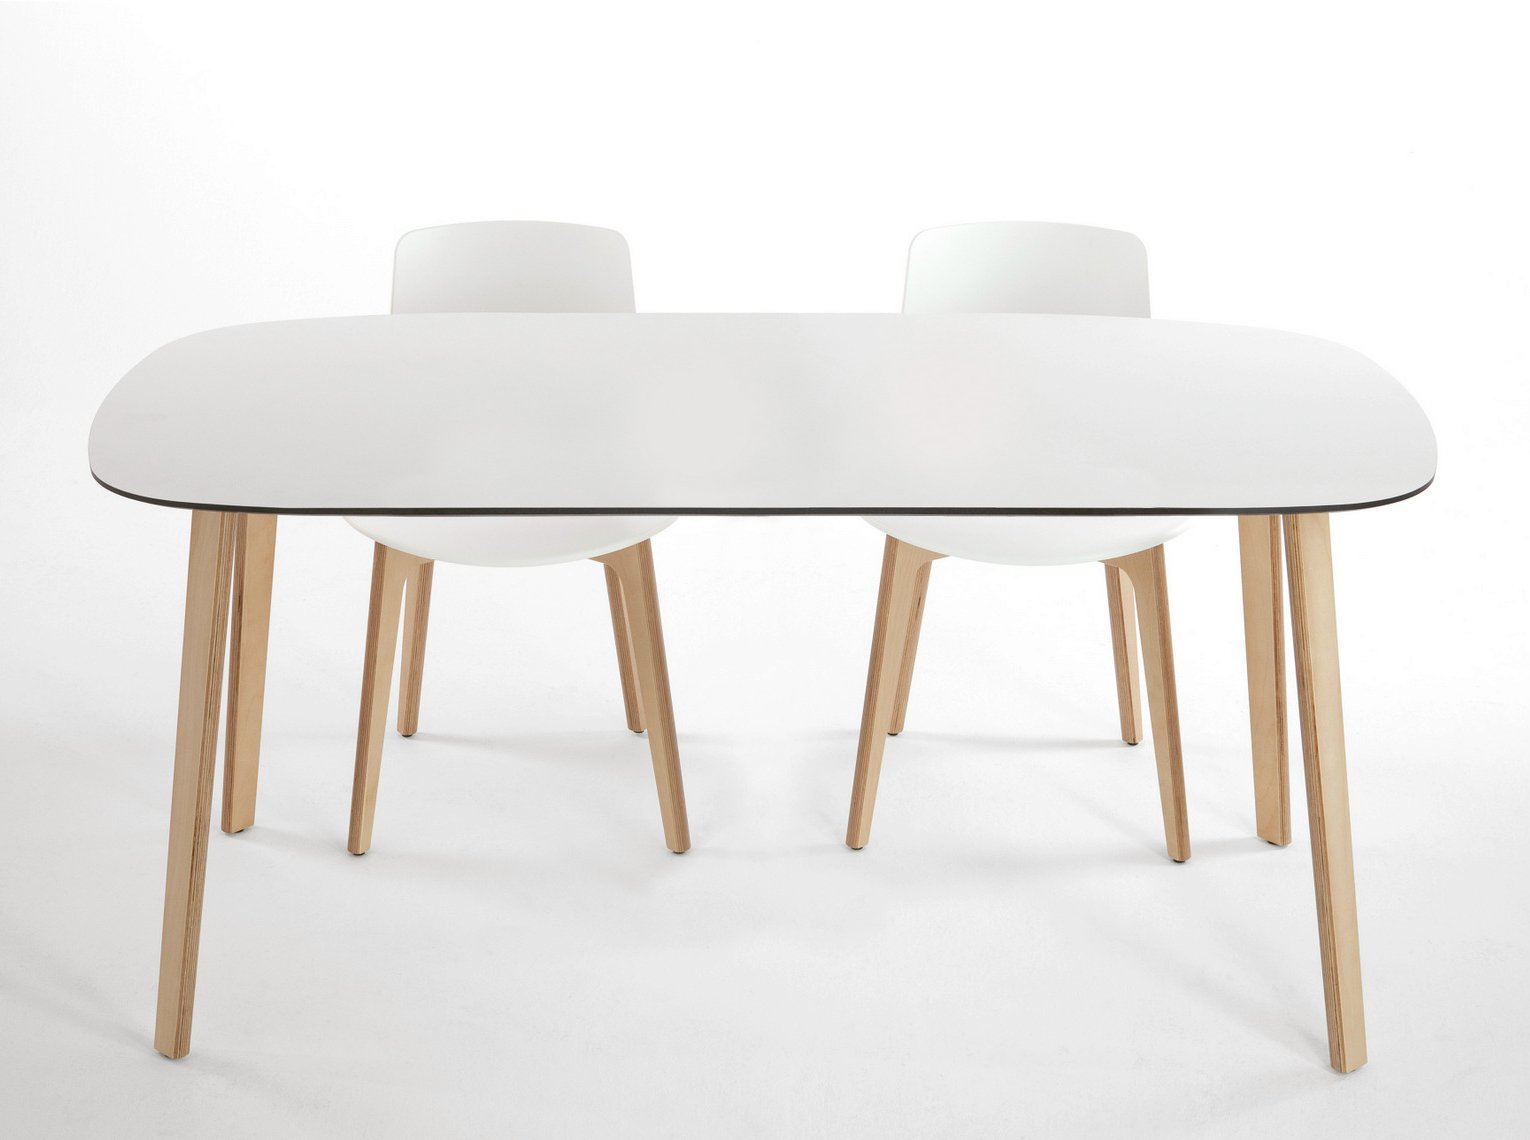 Lottus wood table rectangulaire by enea design lievore - Ou acheter une table de salle a manger ...